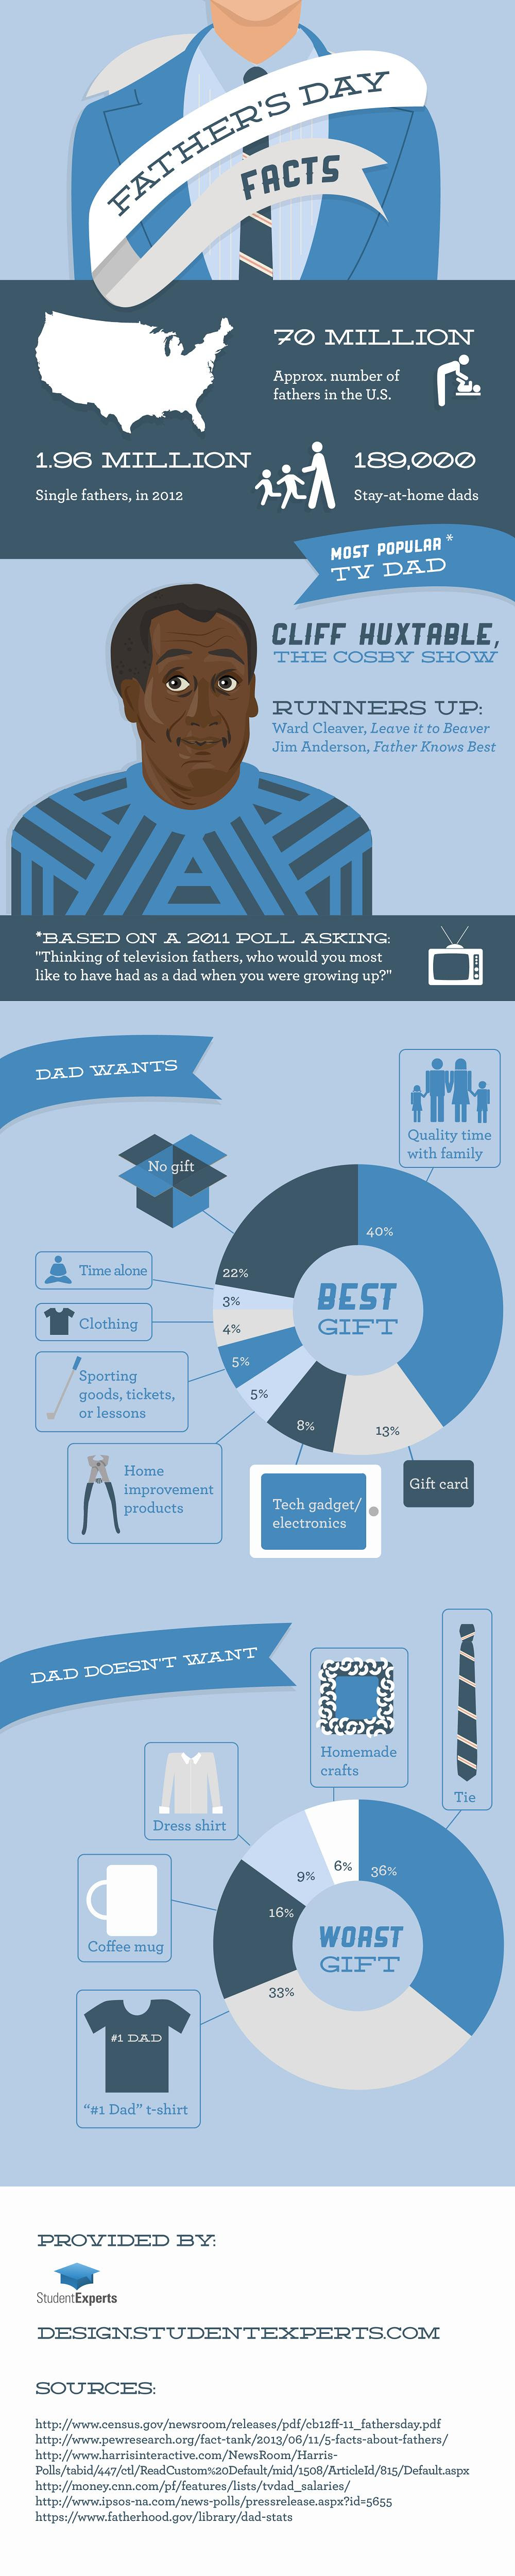 Infographic: Father's Day Facts #infographic